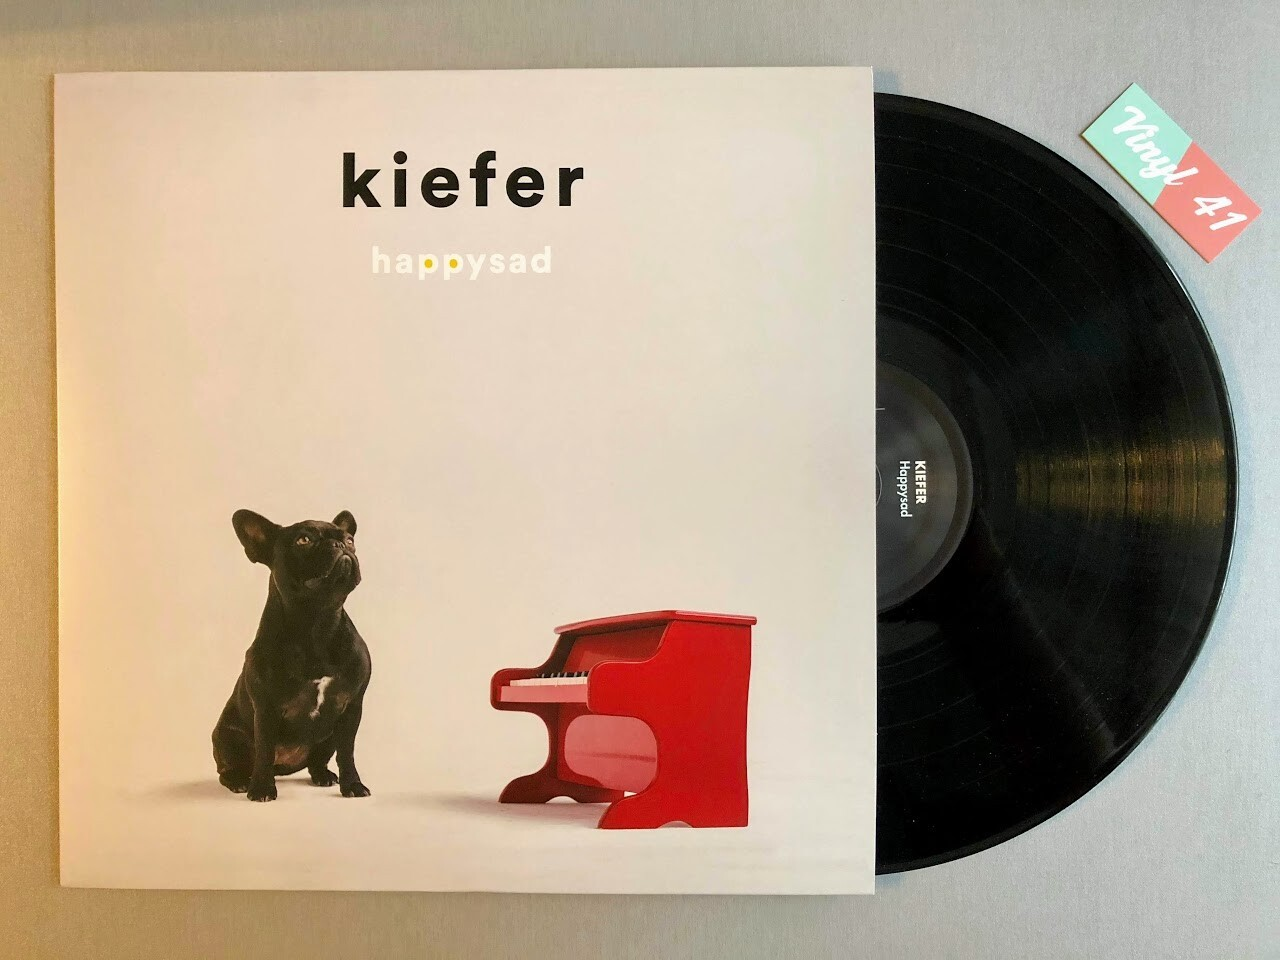 Kiefer - Happysad (Stones Throw)